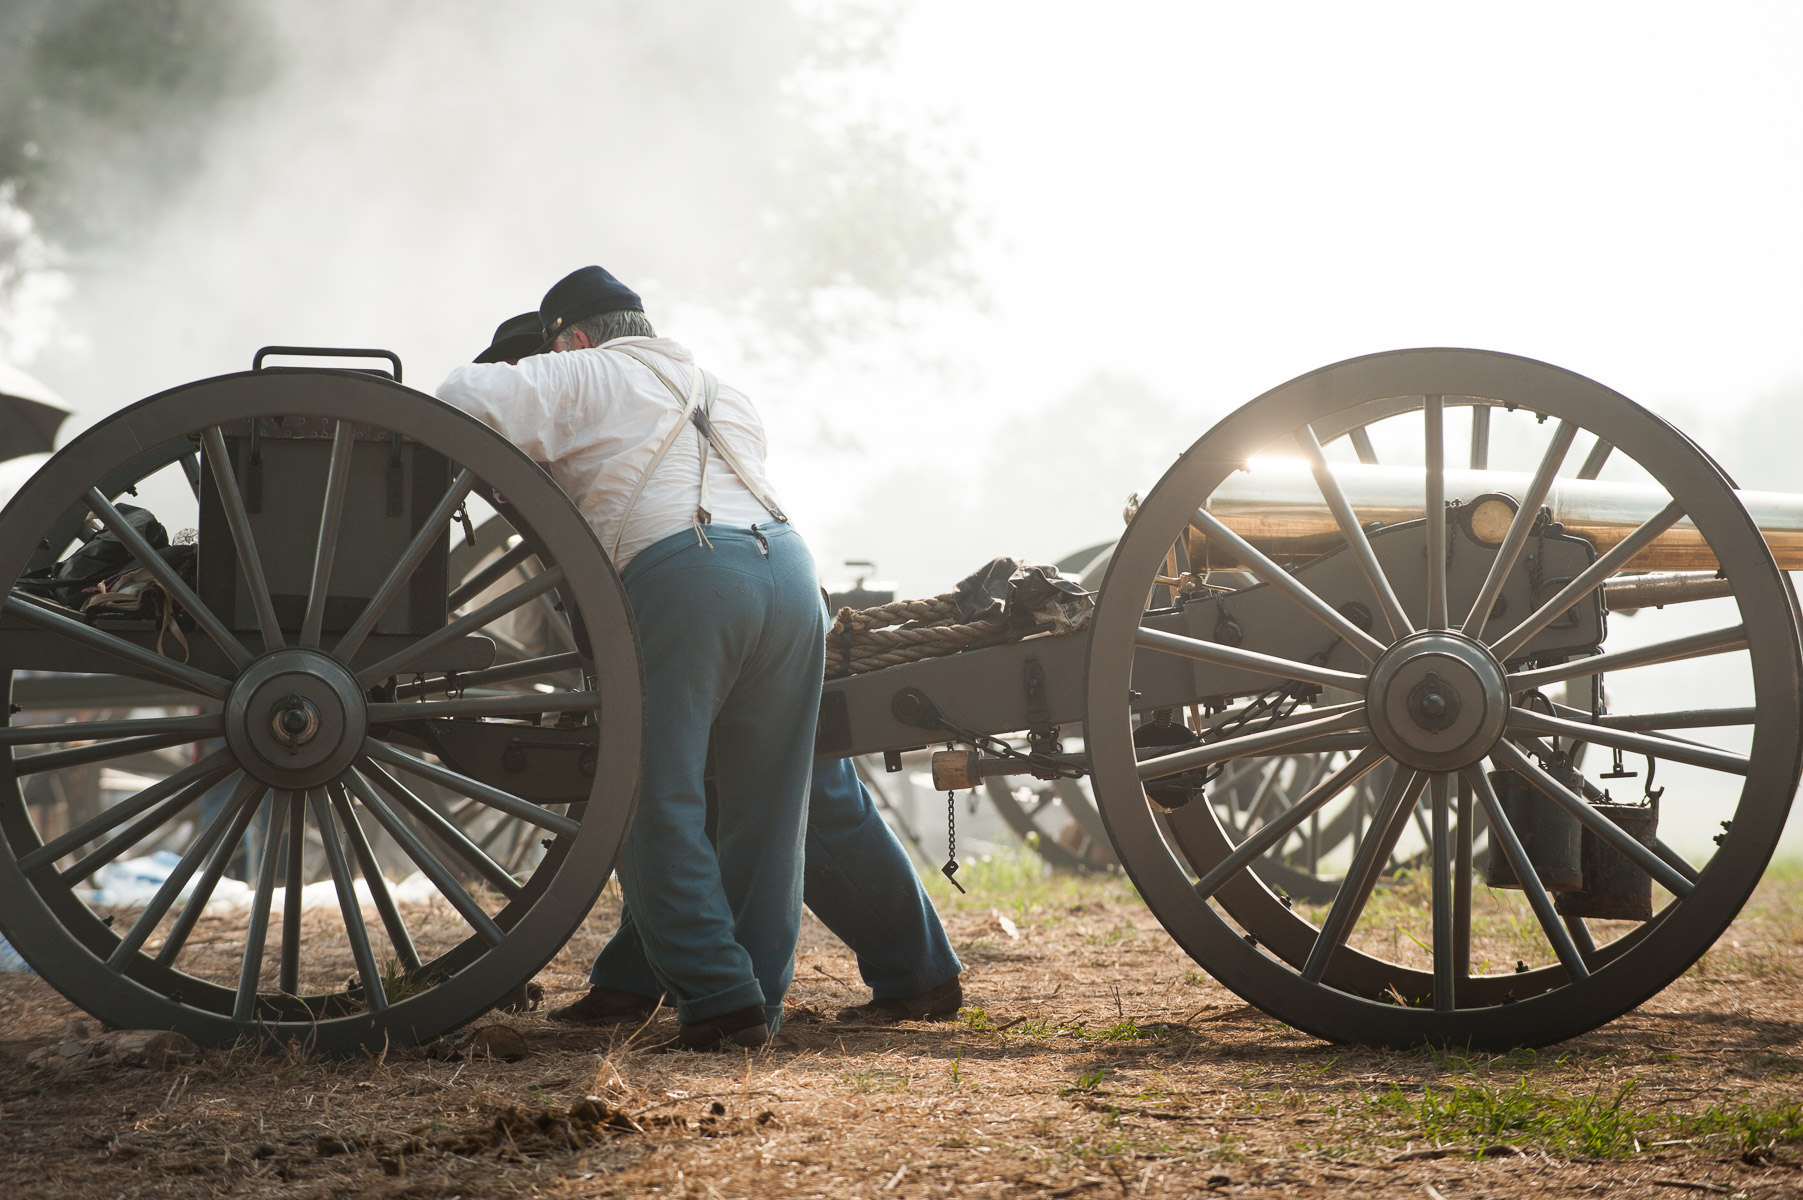 Manassas Reenactment Battle